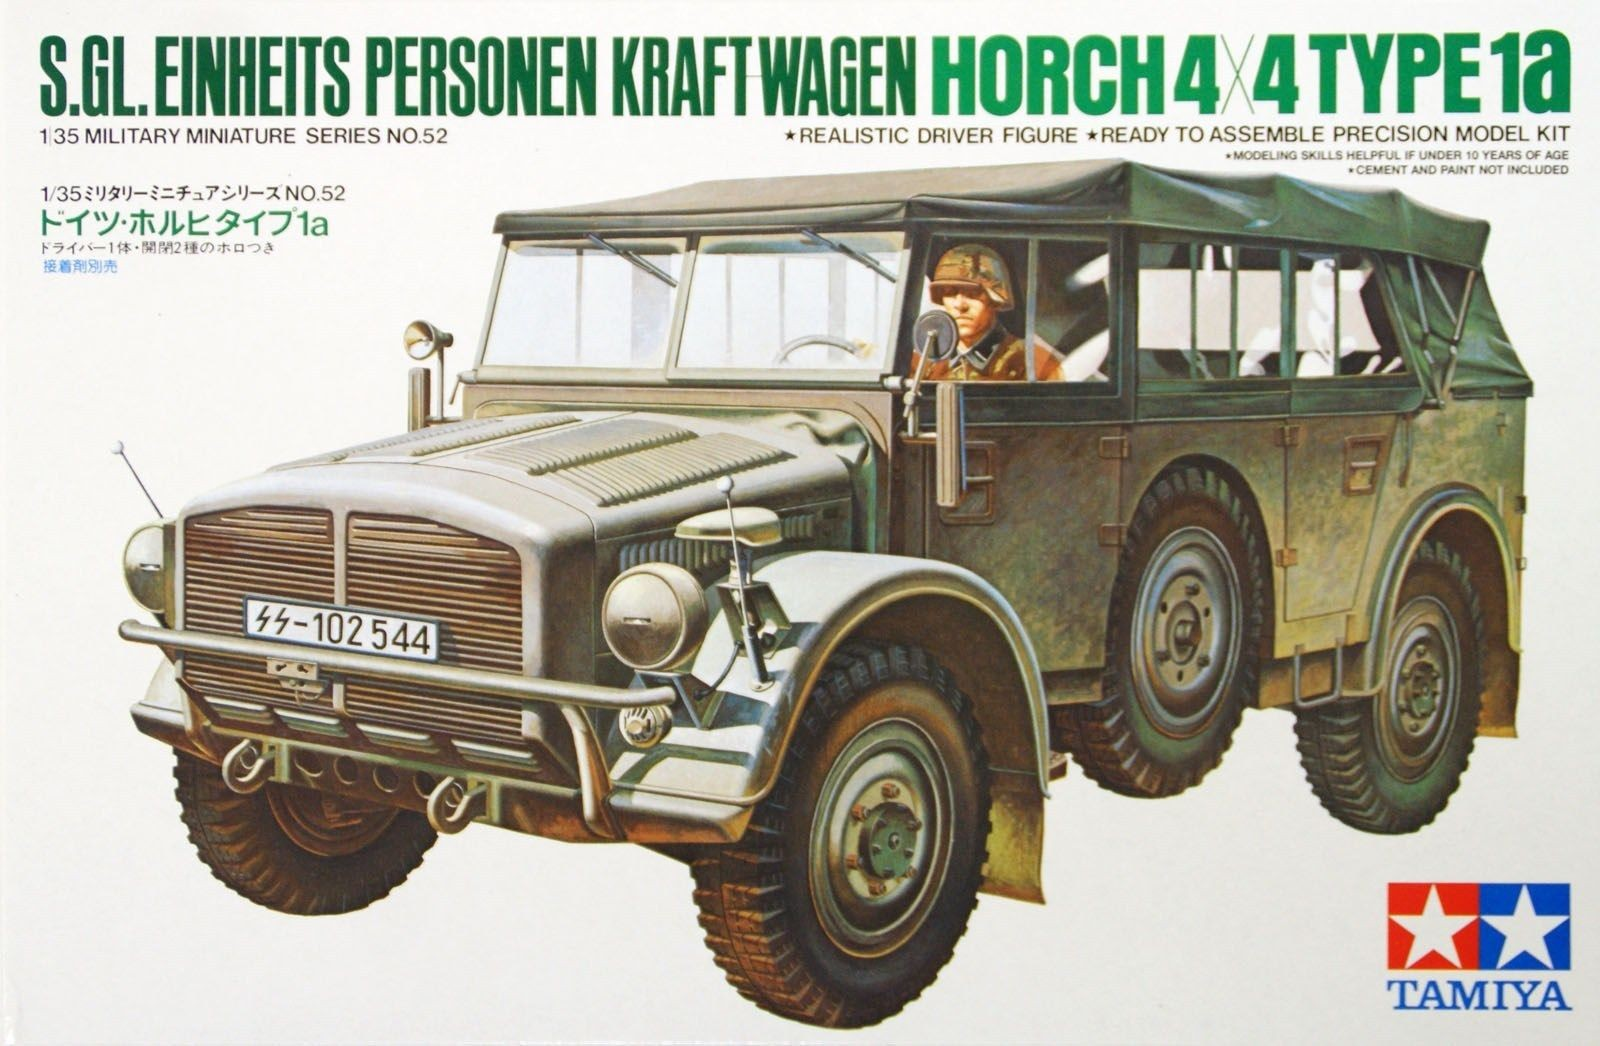 German Horch Type 4x4 - Tamiya 35052 - plastic model kit - 1/35 scale